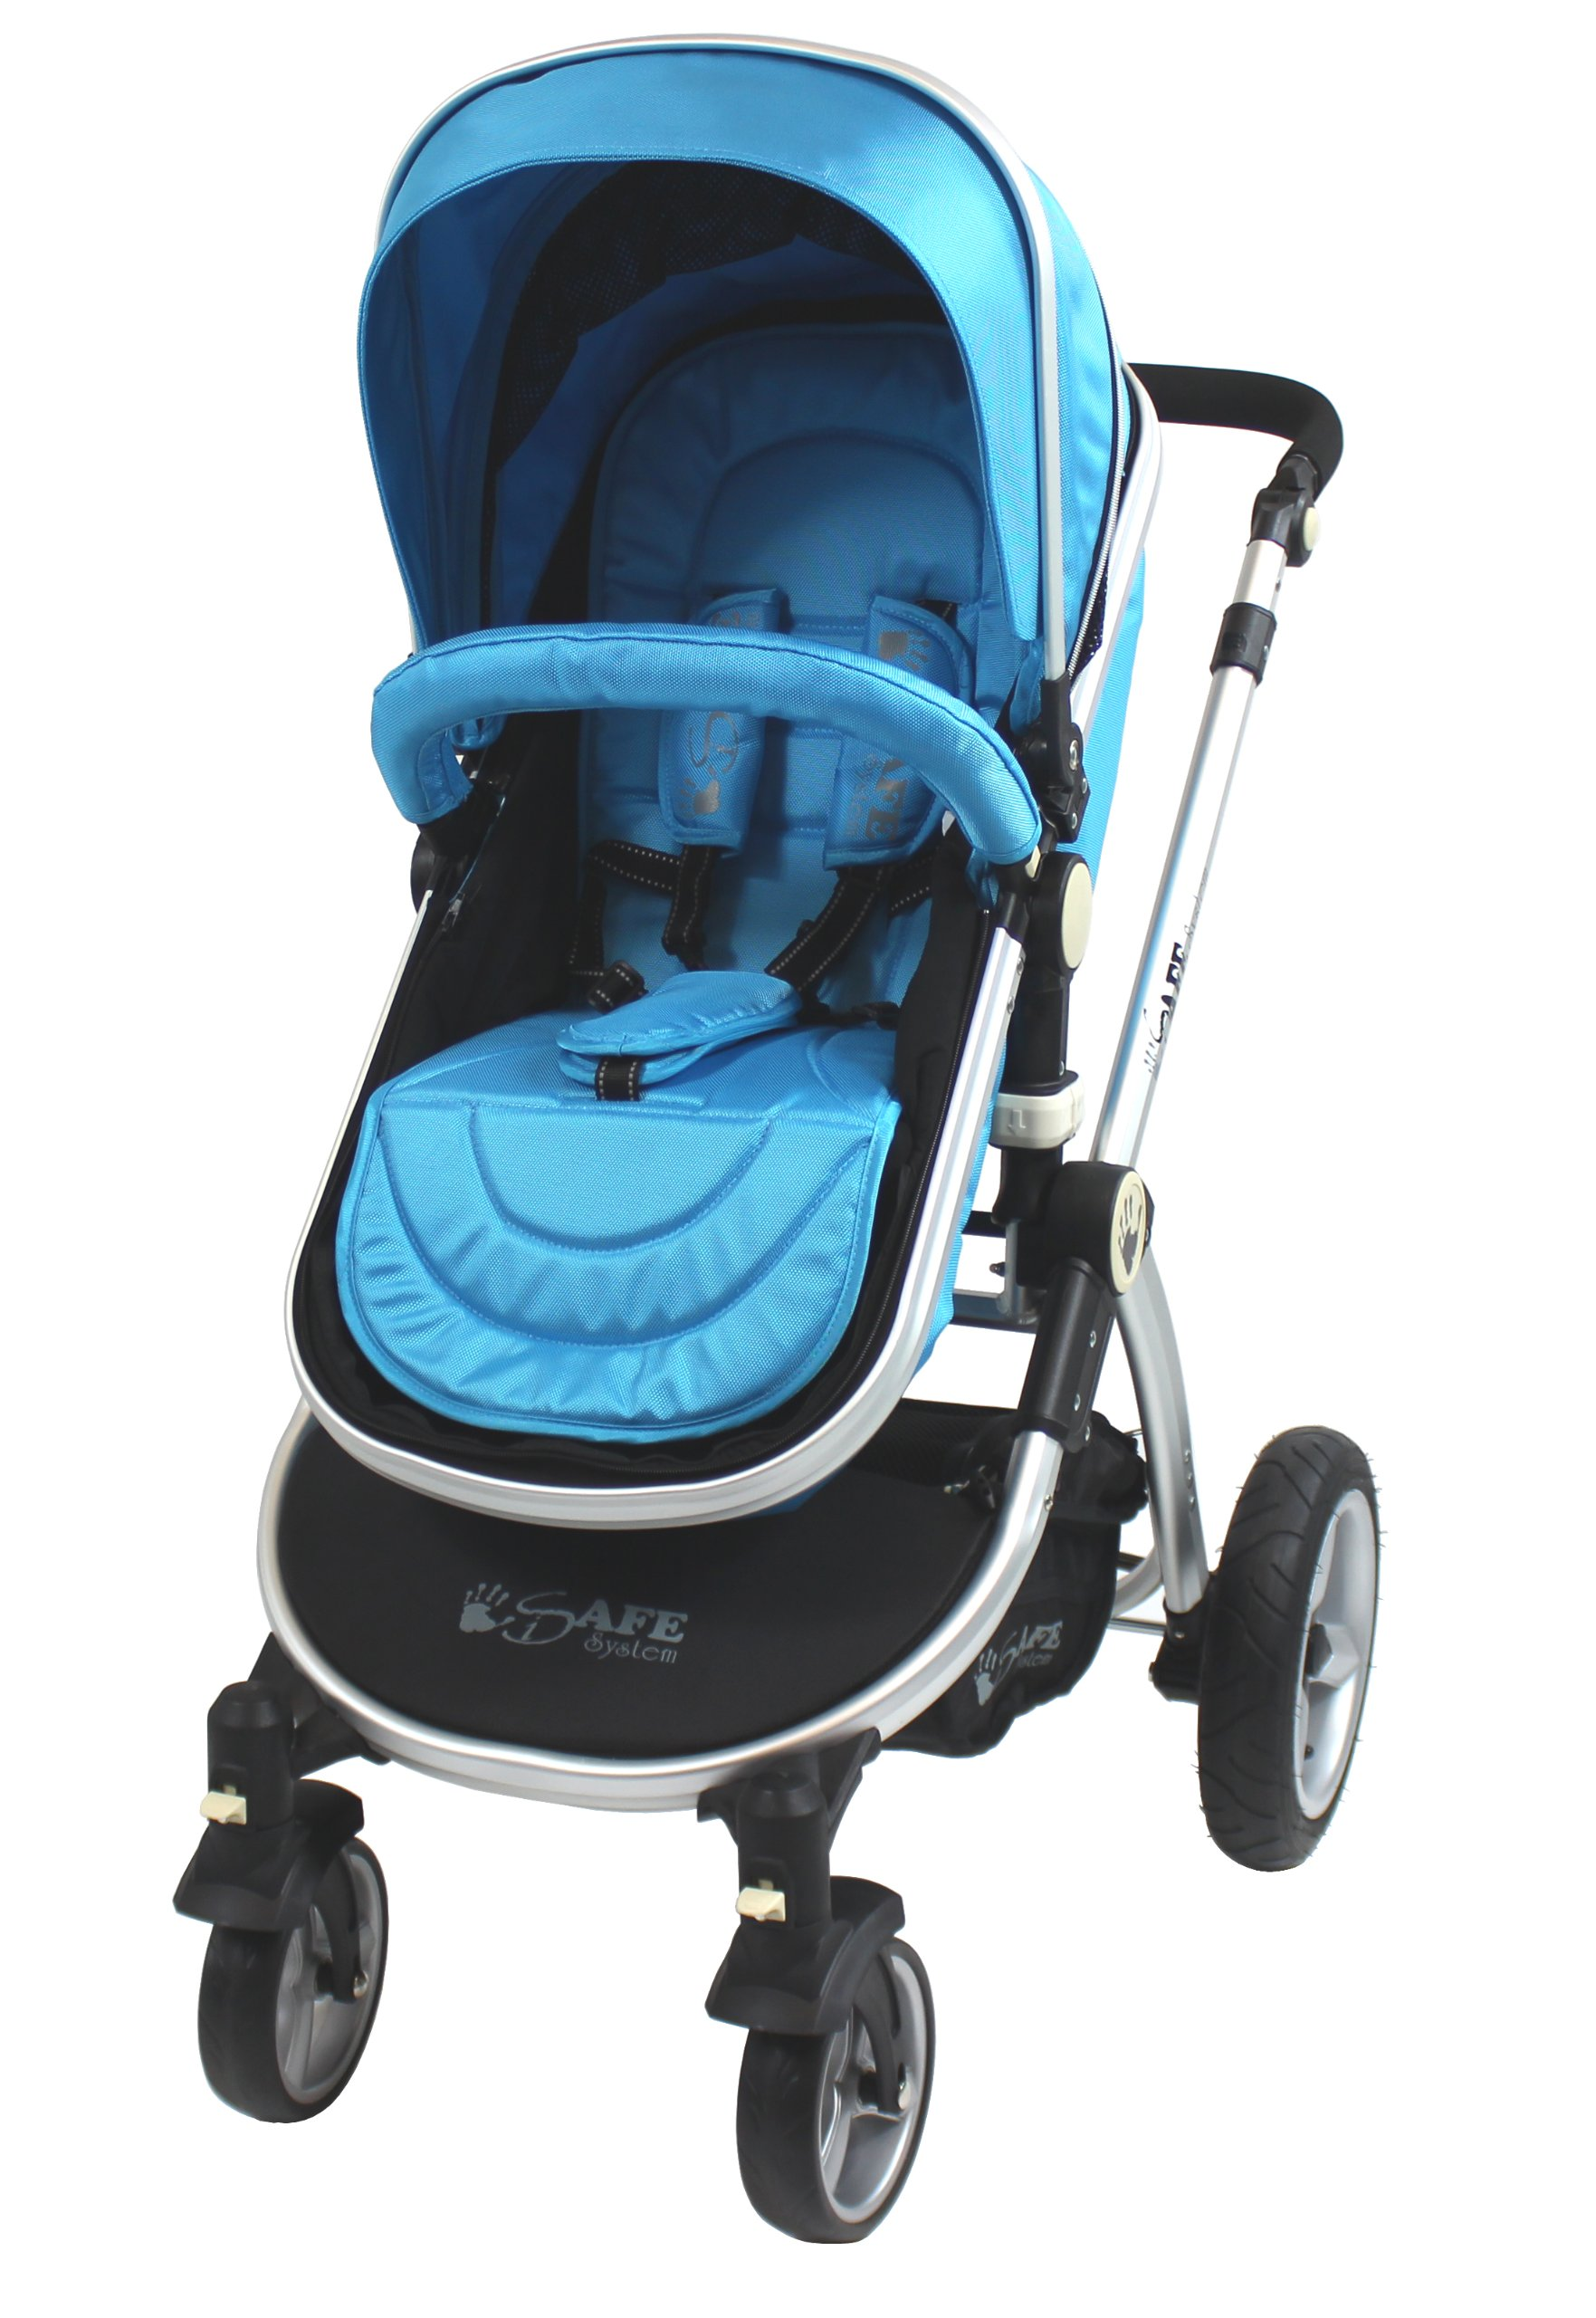 iSafe 2 in 1 Baby Pram System Complete (Ocean) iSafe We Are Proud To Present One Of The Finest 2in1 Stroller/Pram/Pramette/Travel System in the UK & Europe! 2 in 1 Stroller / Pram Extremely Easy Conversion To A Full Size Carrycot For Unrivalled Comfort. Complete With Boot Cover, Luxury Liner, 5 Point Harness, Raincover, Shopping Basket With Closed Ziped Top High Quality Rubber Inflatable Wheels With The Full All around Soft Suspension For That Perfect Unrivalled Ride 4